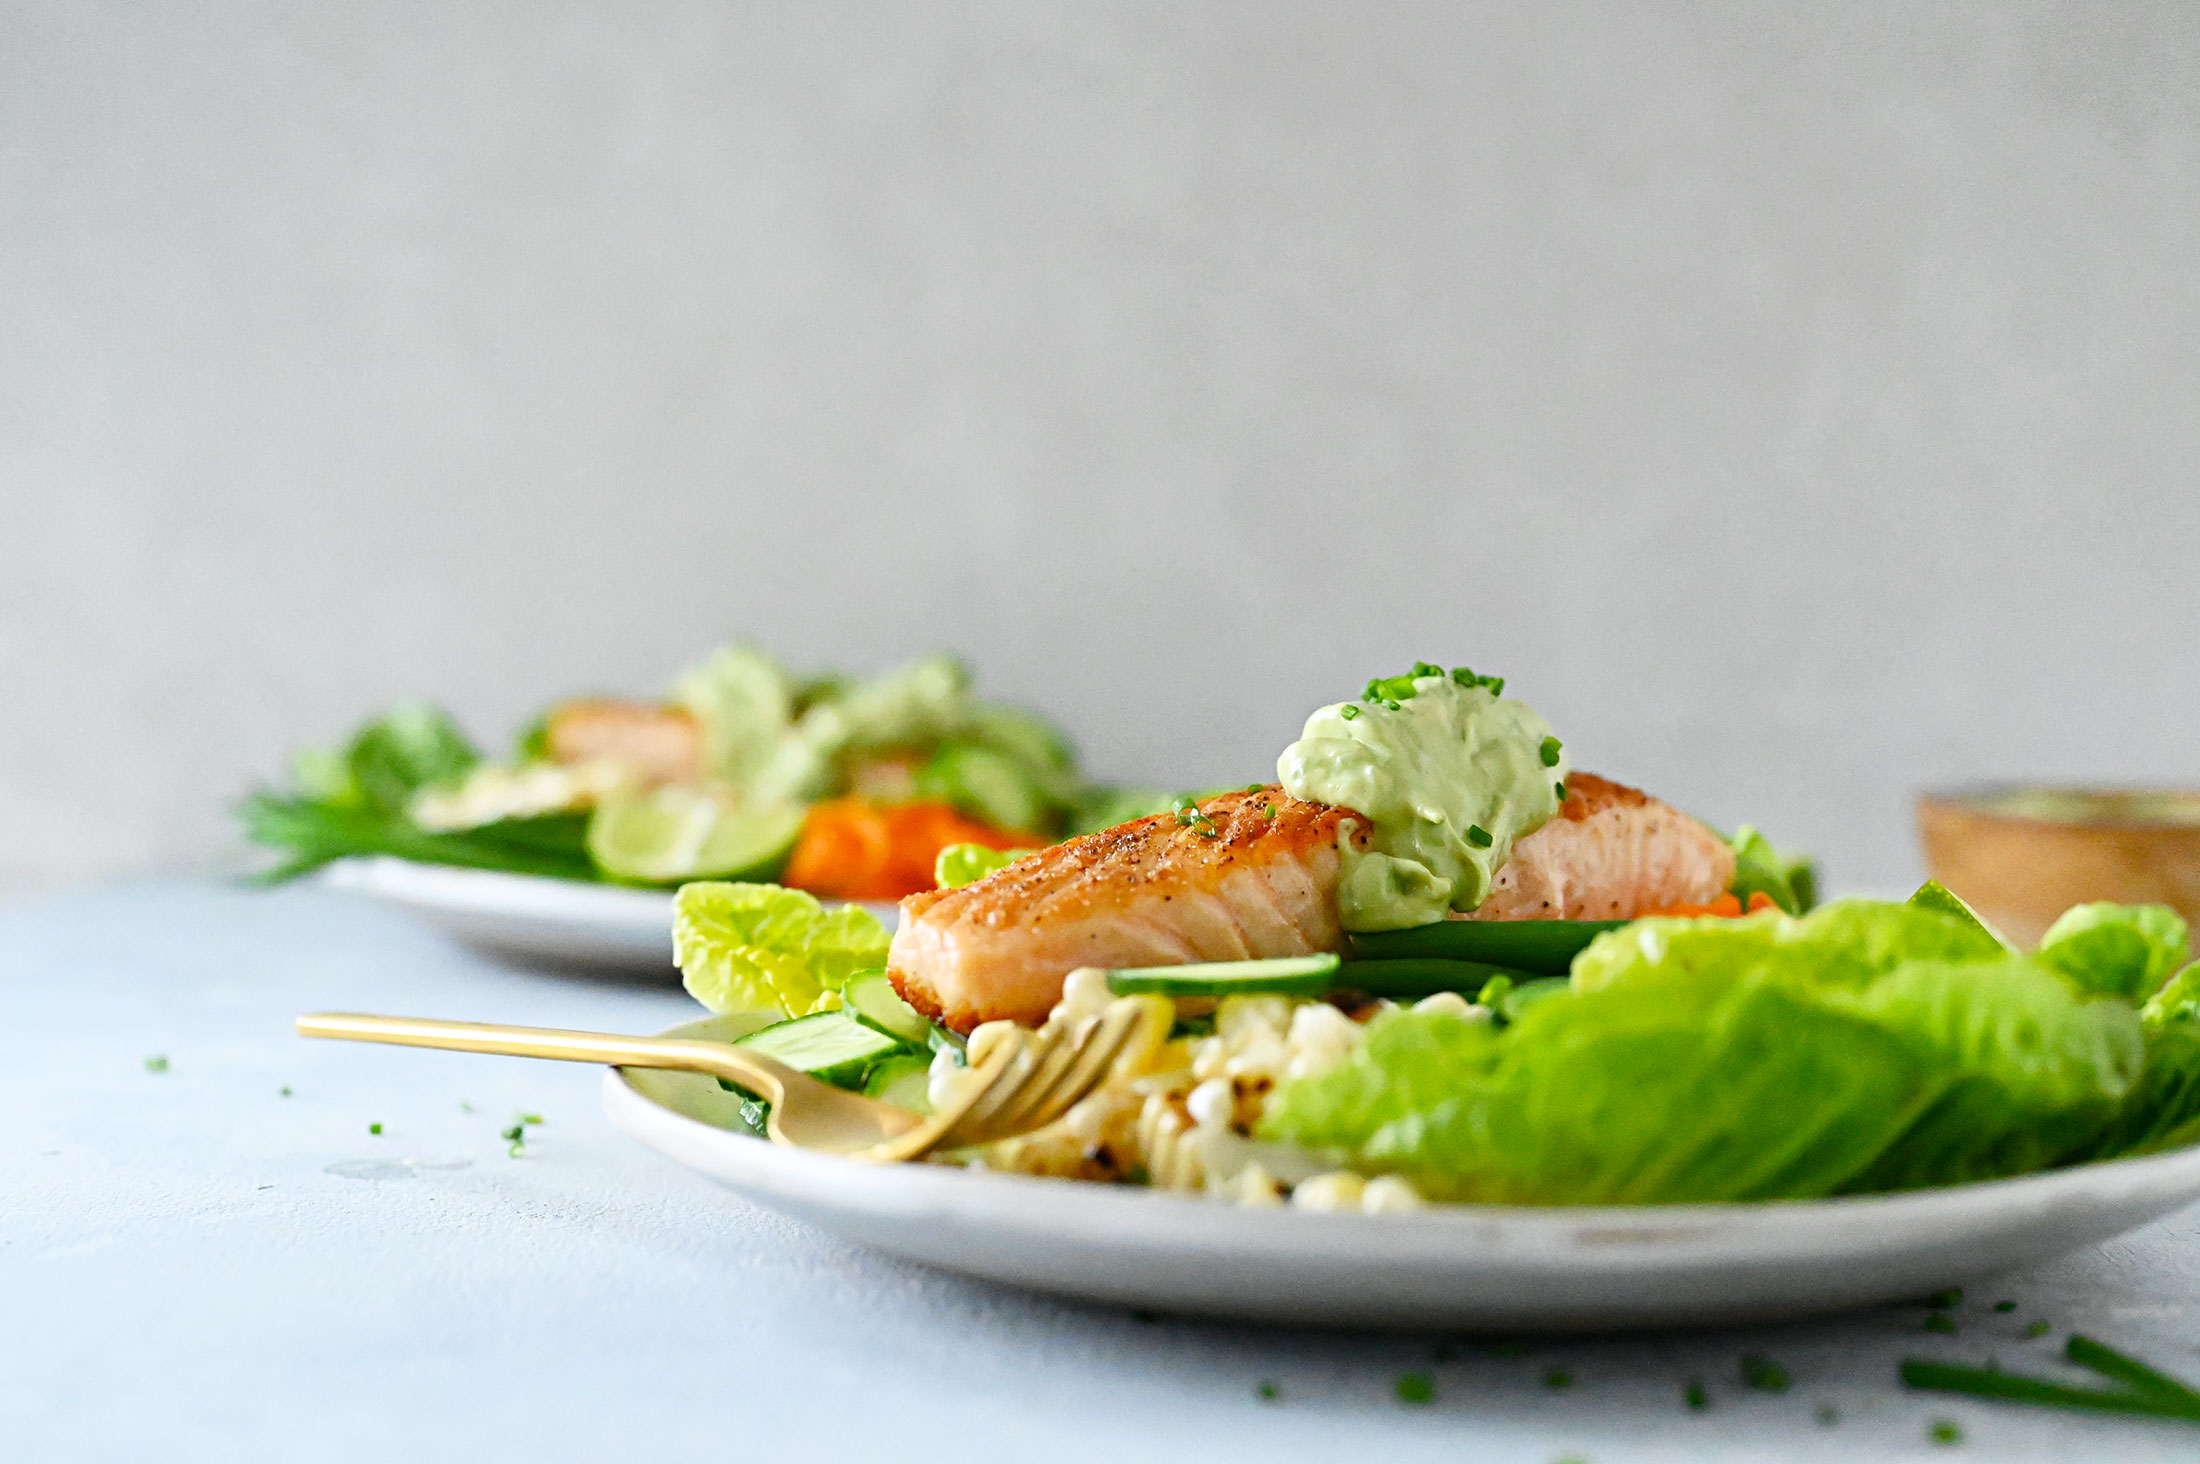 Crispy-Skin Salmon Bowls with Pickled Carrots and Miso Avocado Green Goddess Dressing recipe (Gluten-Free + Dairy-Free) via thepigandquill.com #weeknightmeal